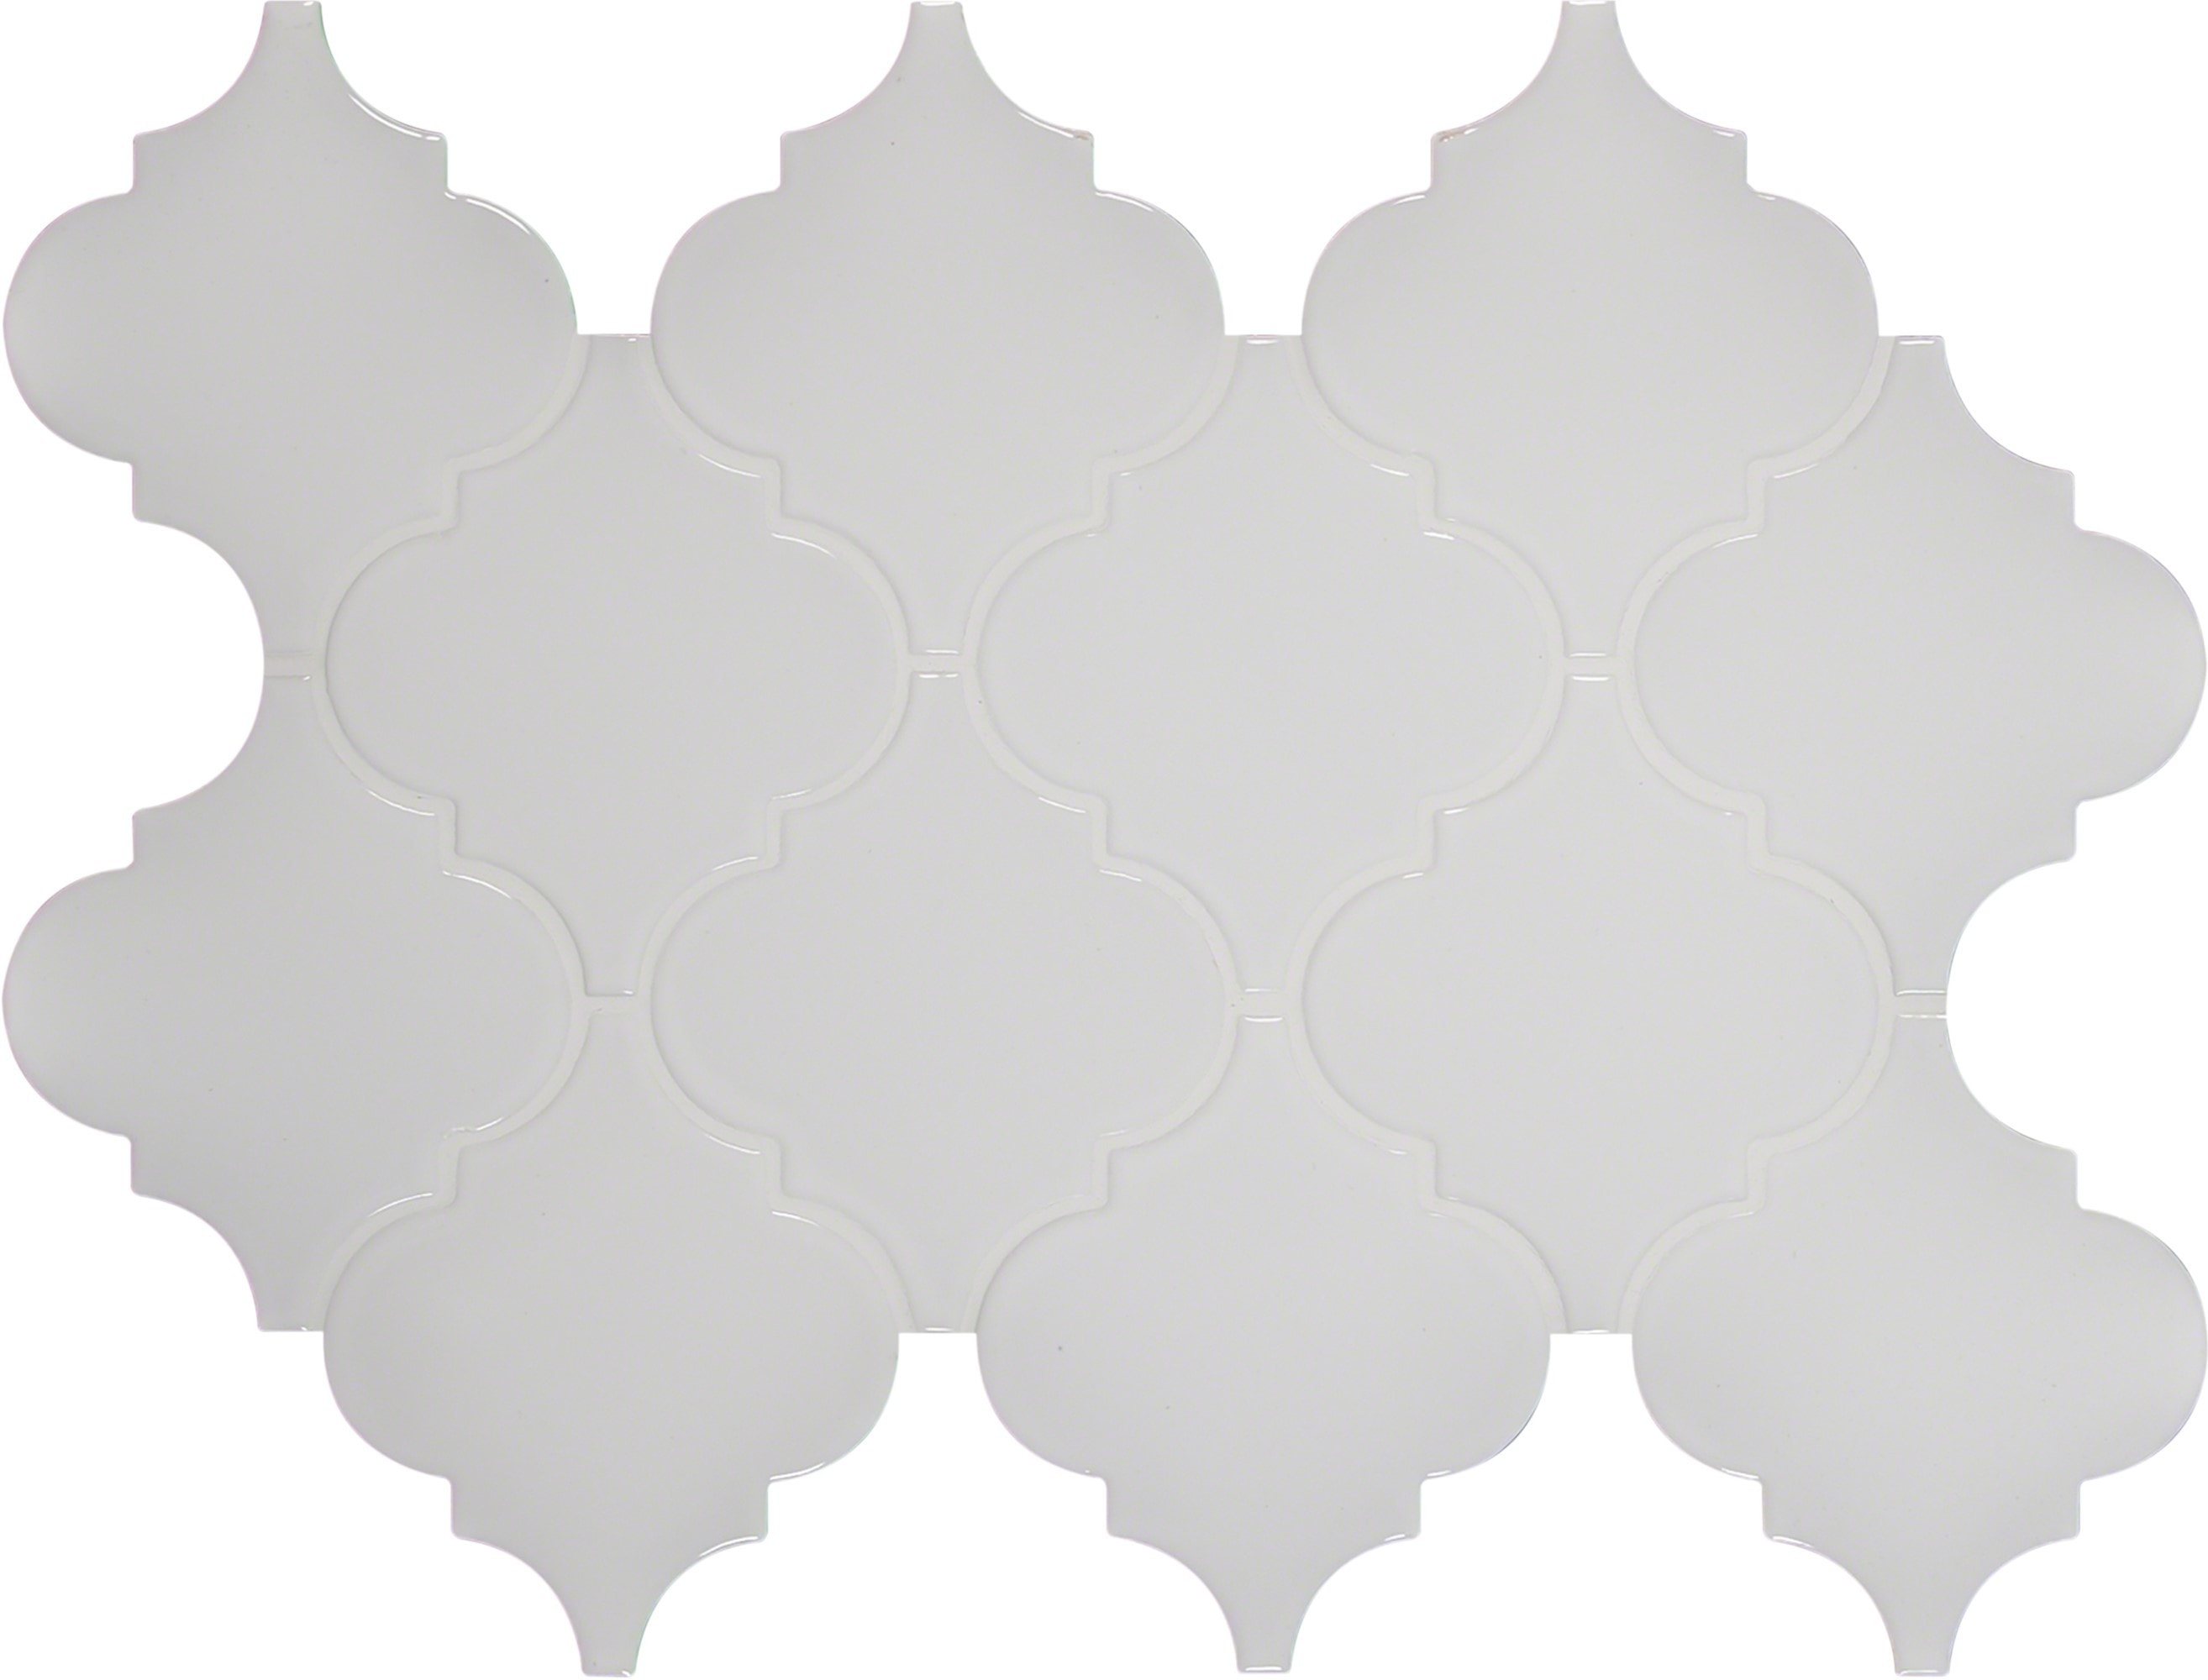 Ms international ceramic tile whisper white arabesque 8mm ms international ceramic tile whisper white arabesque 8mm pattern glossy dailygadgetfo Image collections